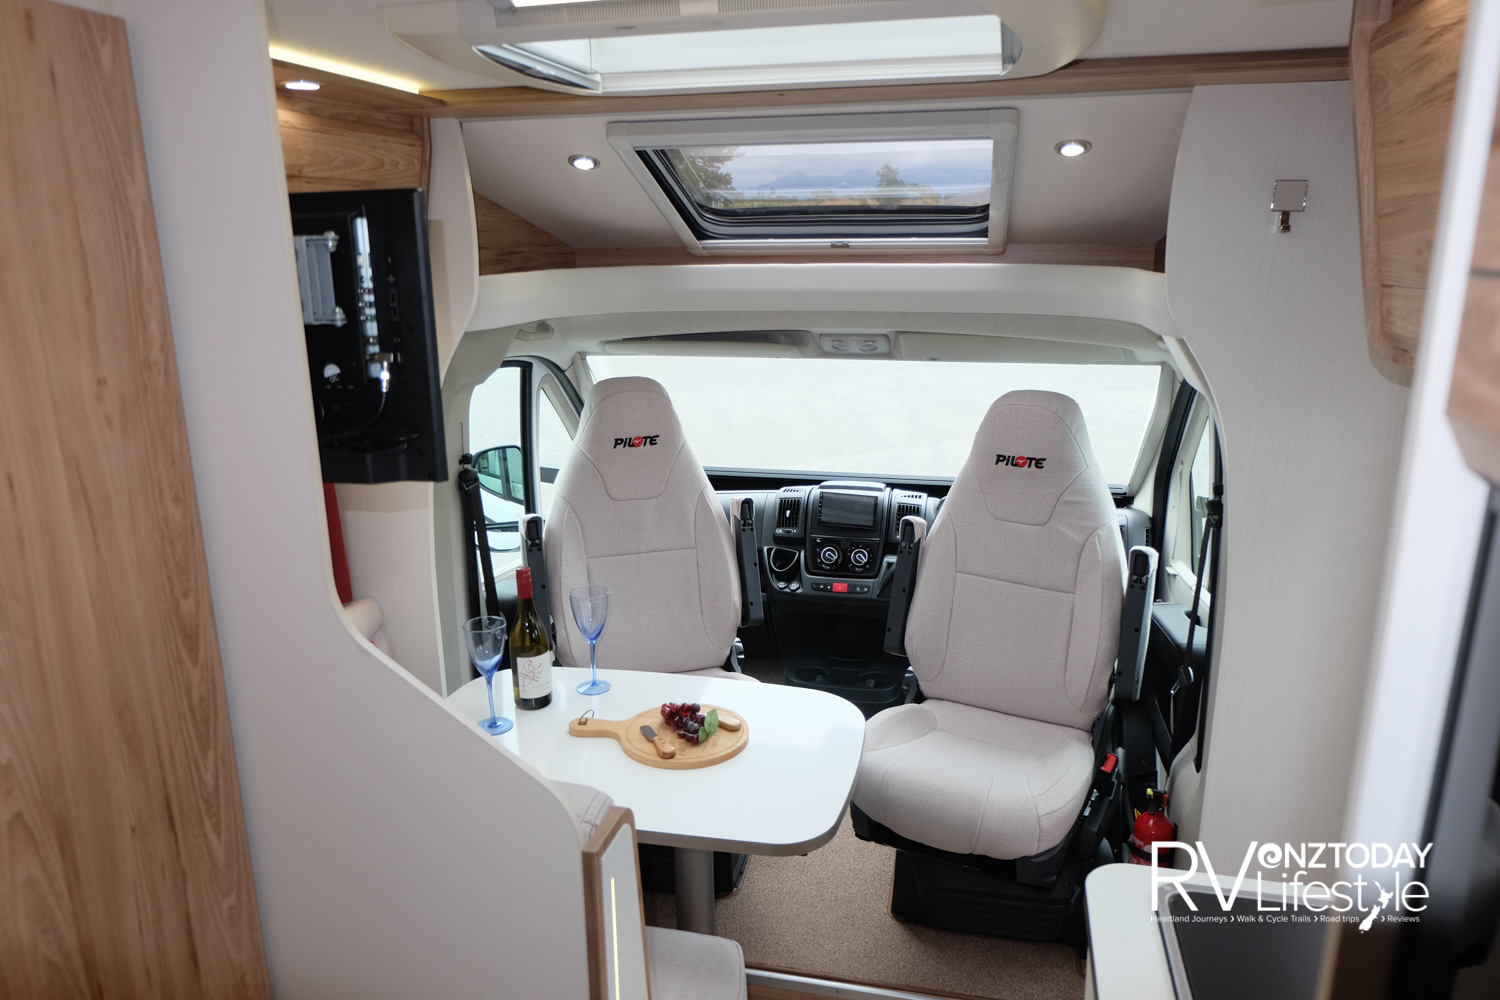 Swivel cab seats add to the seating options from the front cab area. Lots of light with the roof vents above